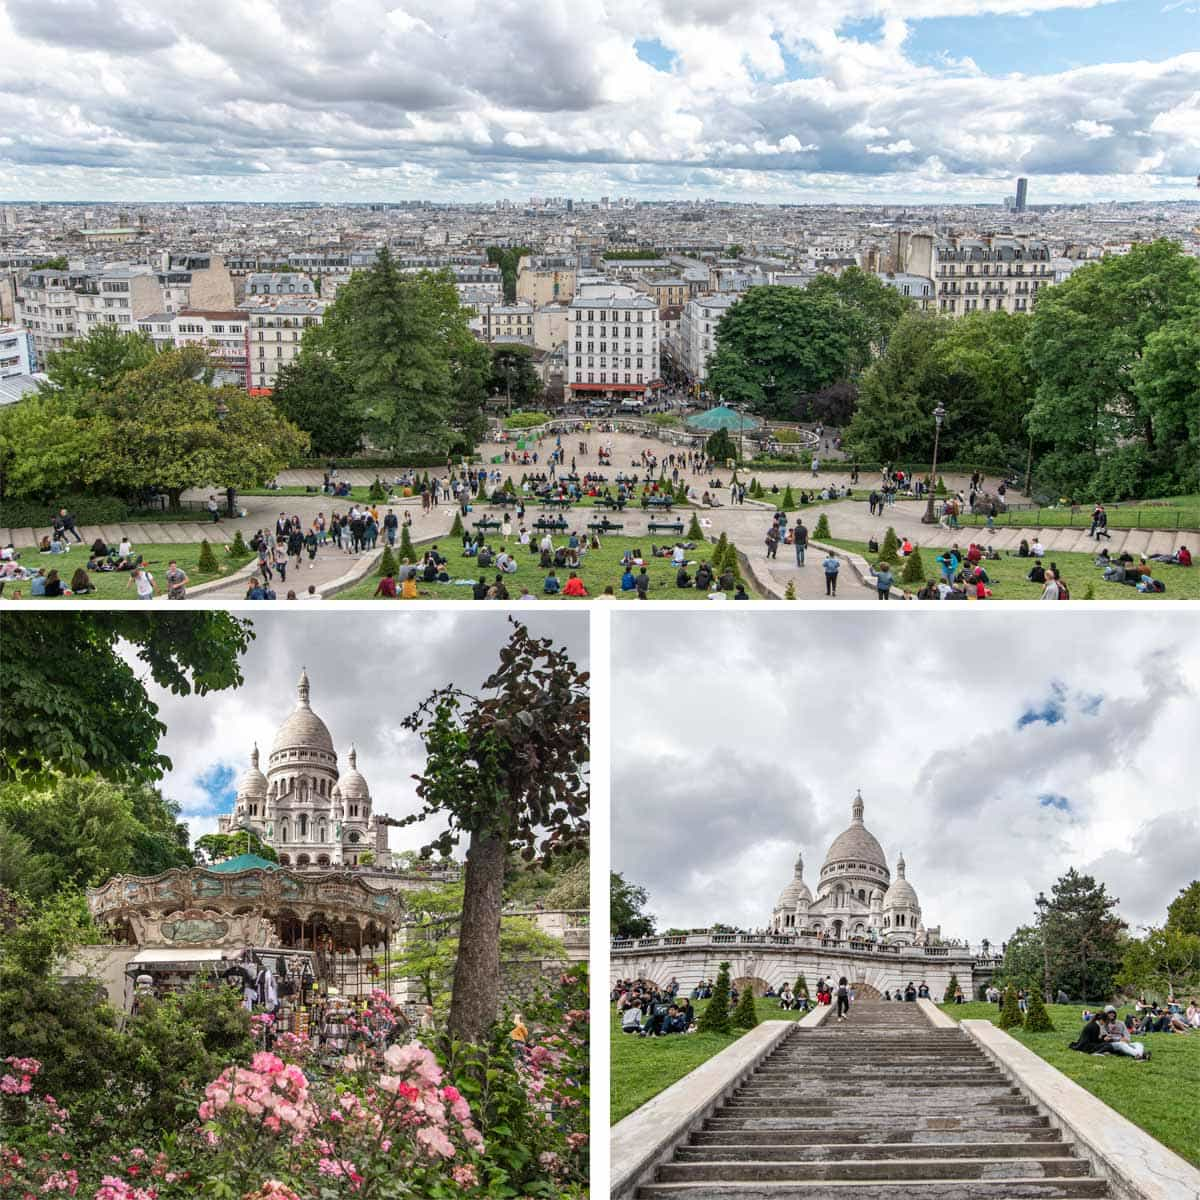 Sacre Coeur Basilica from different viewpoints